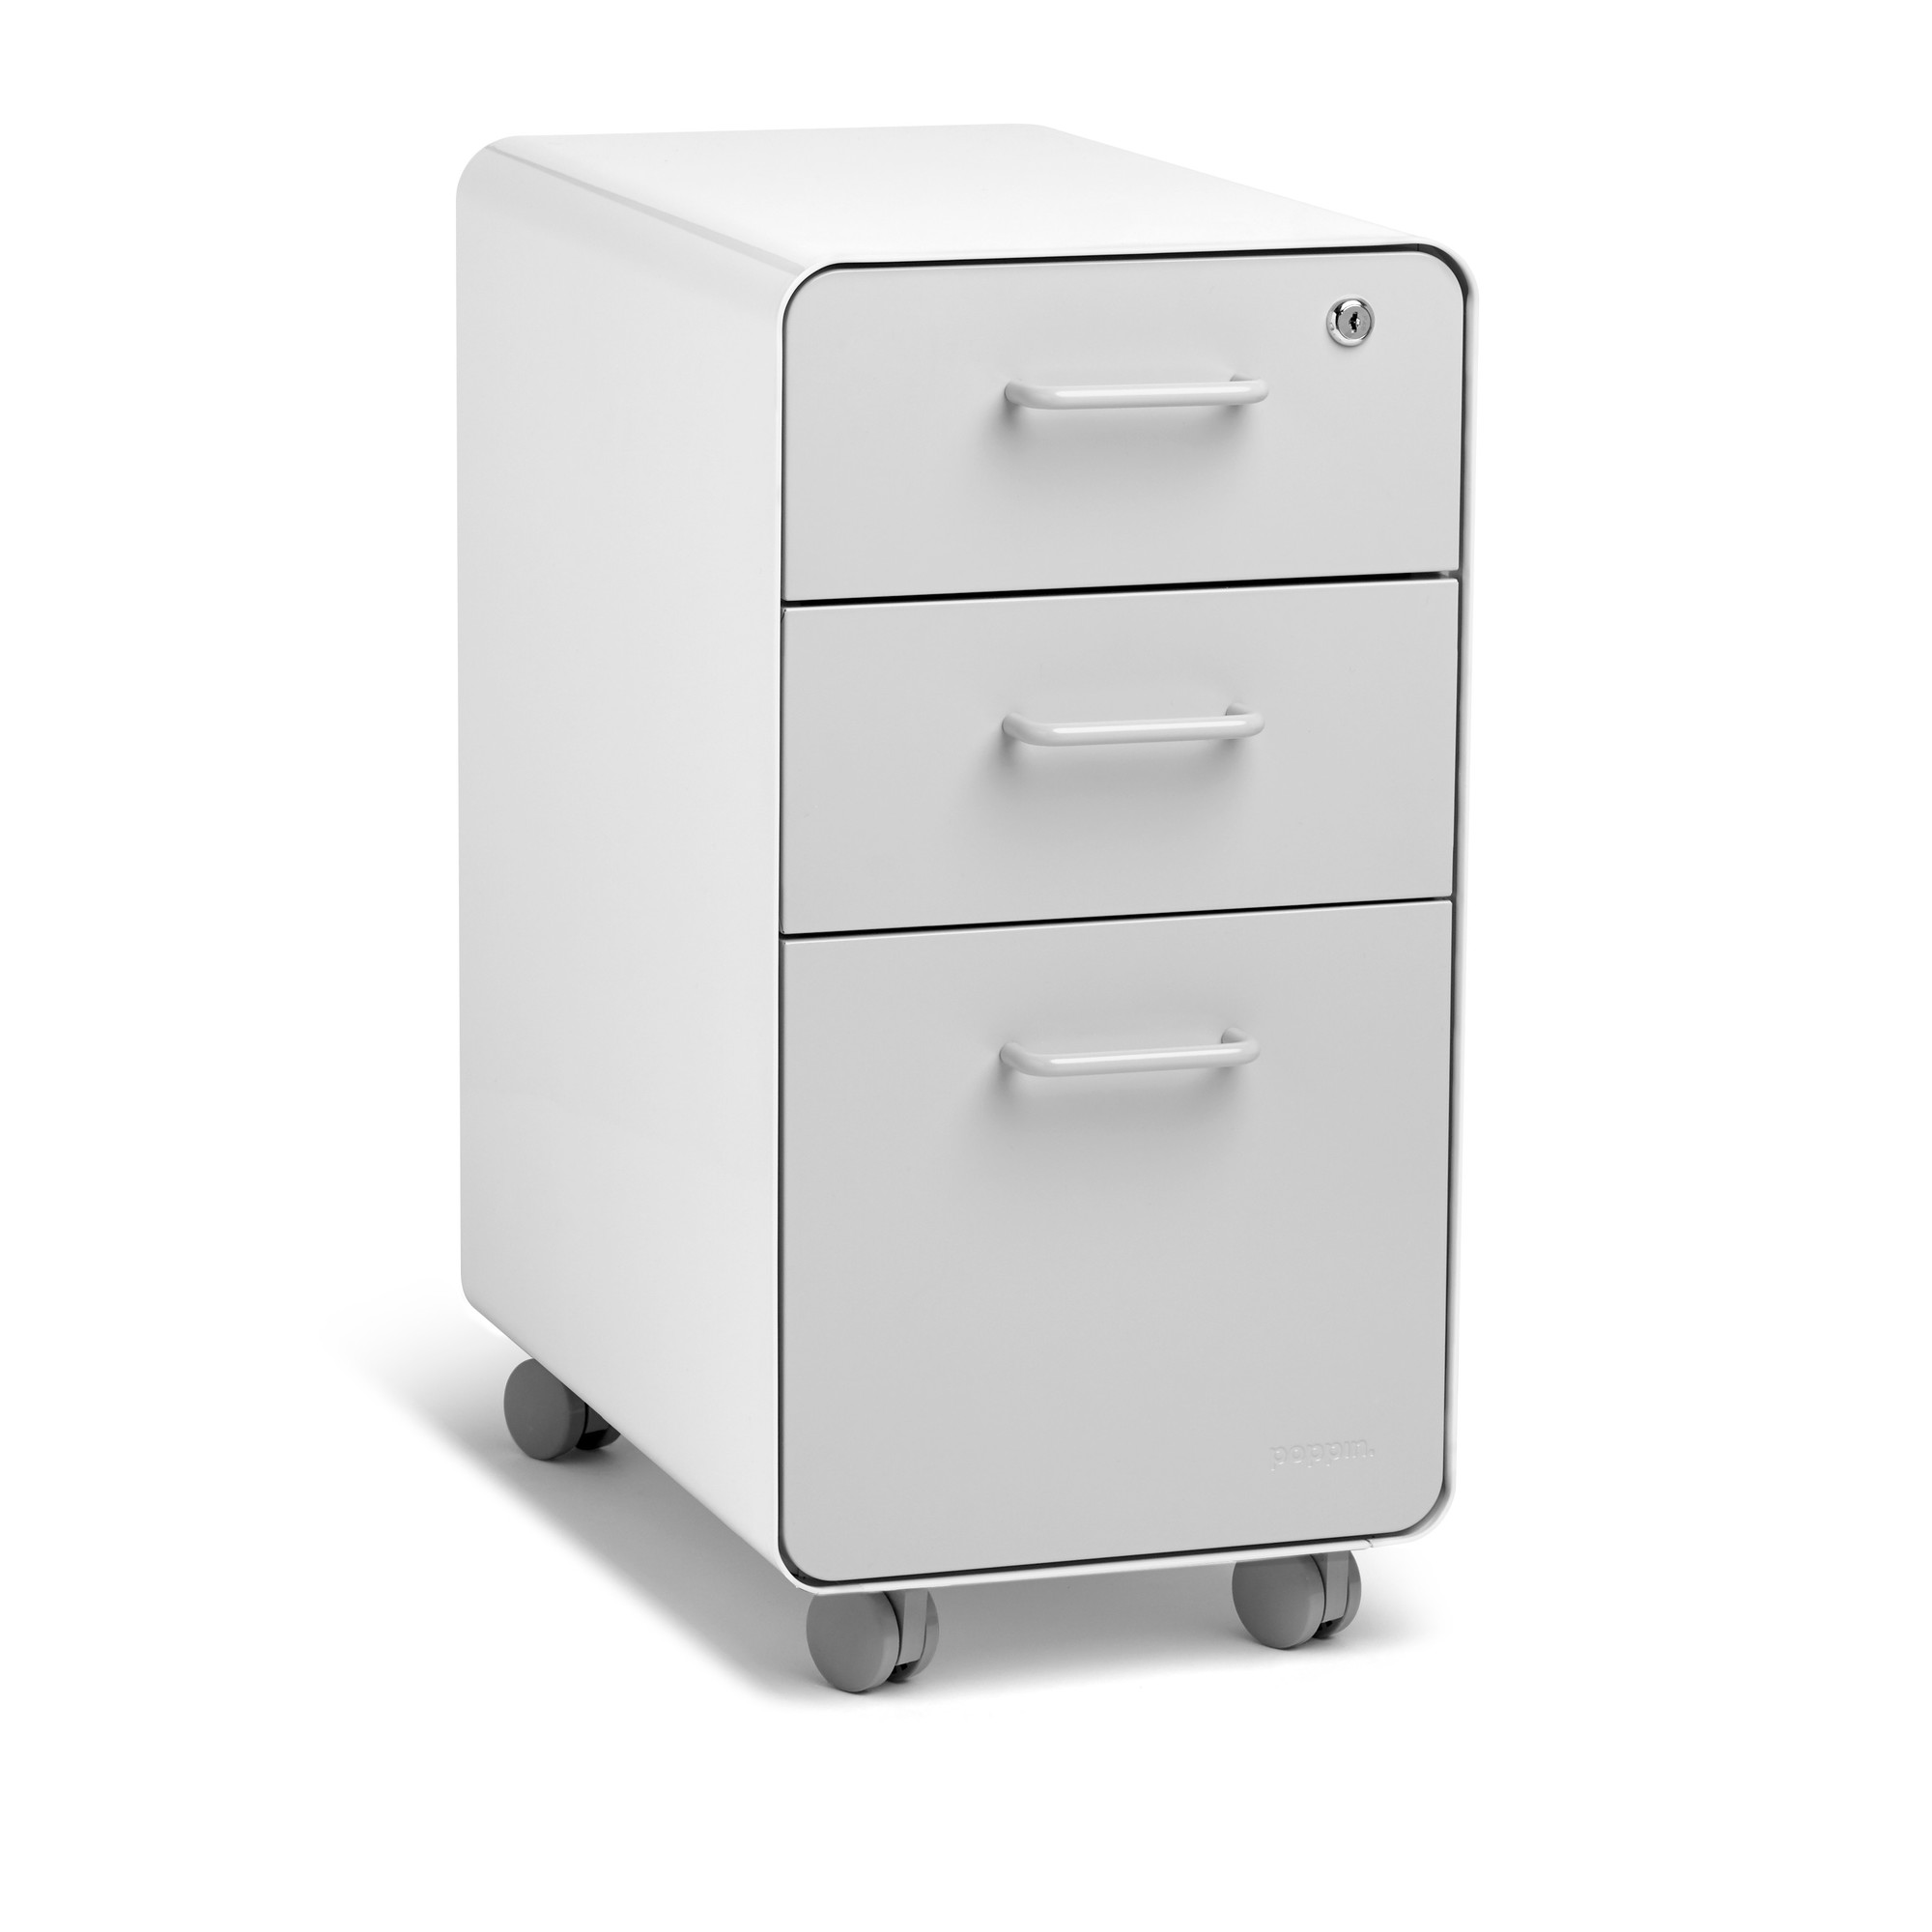 Superieur ... White + Light Gray Slim Stow 3 Drawer File Cabinet, Rolling,Light Gray